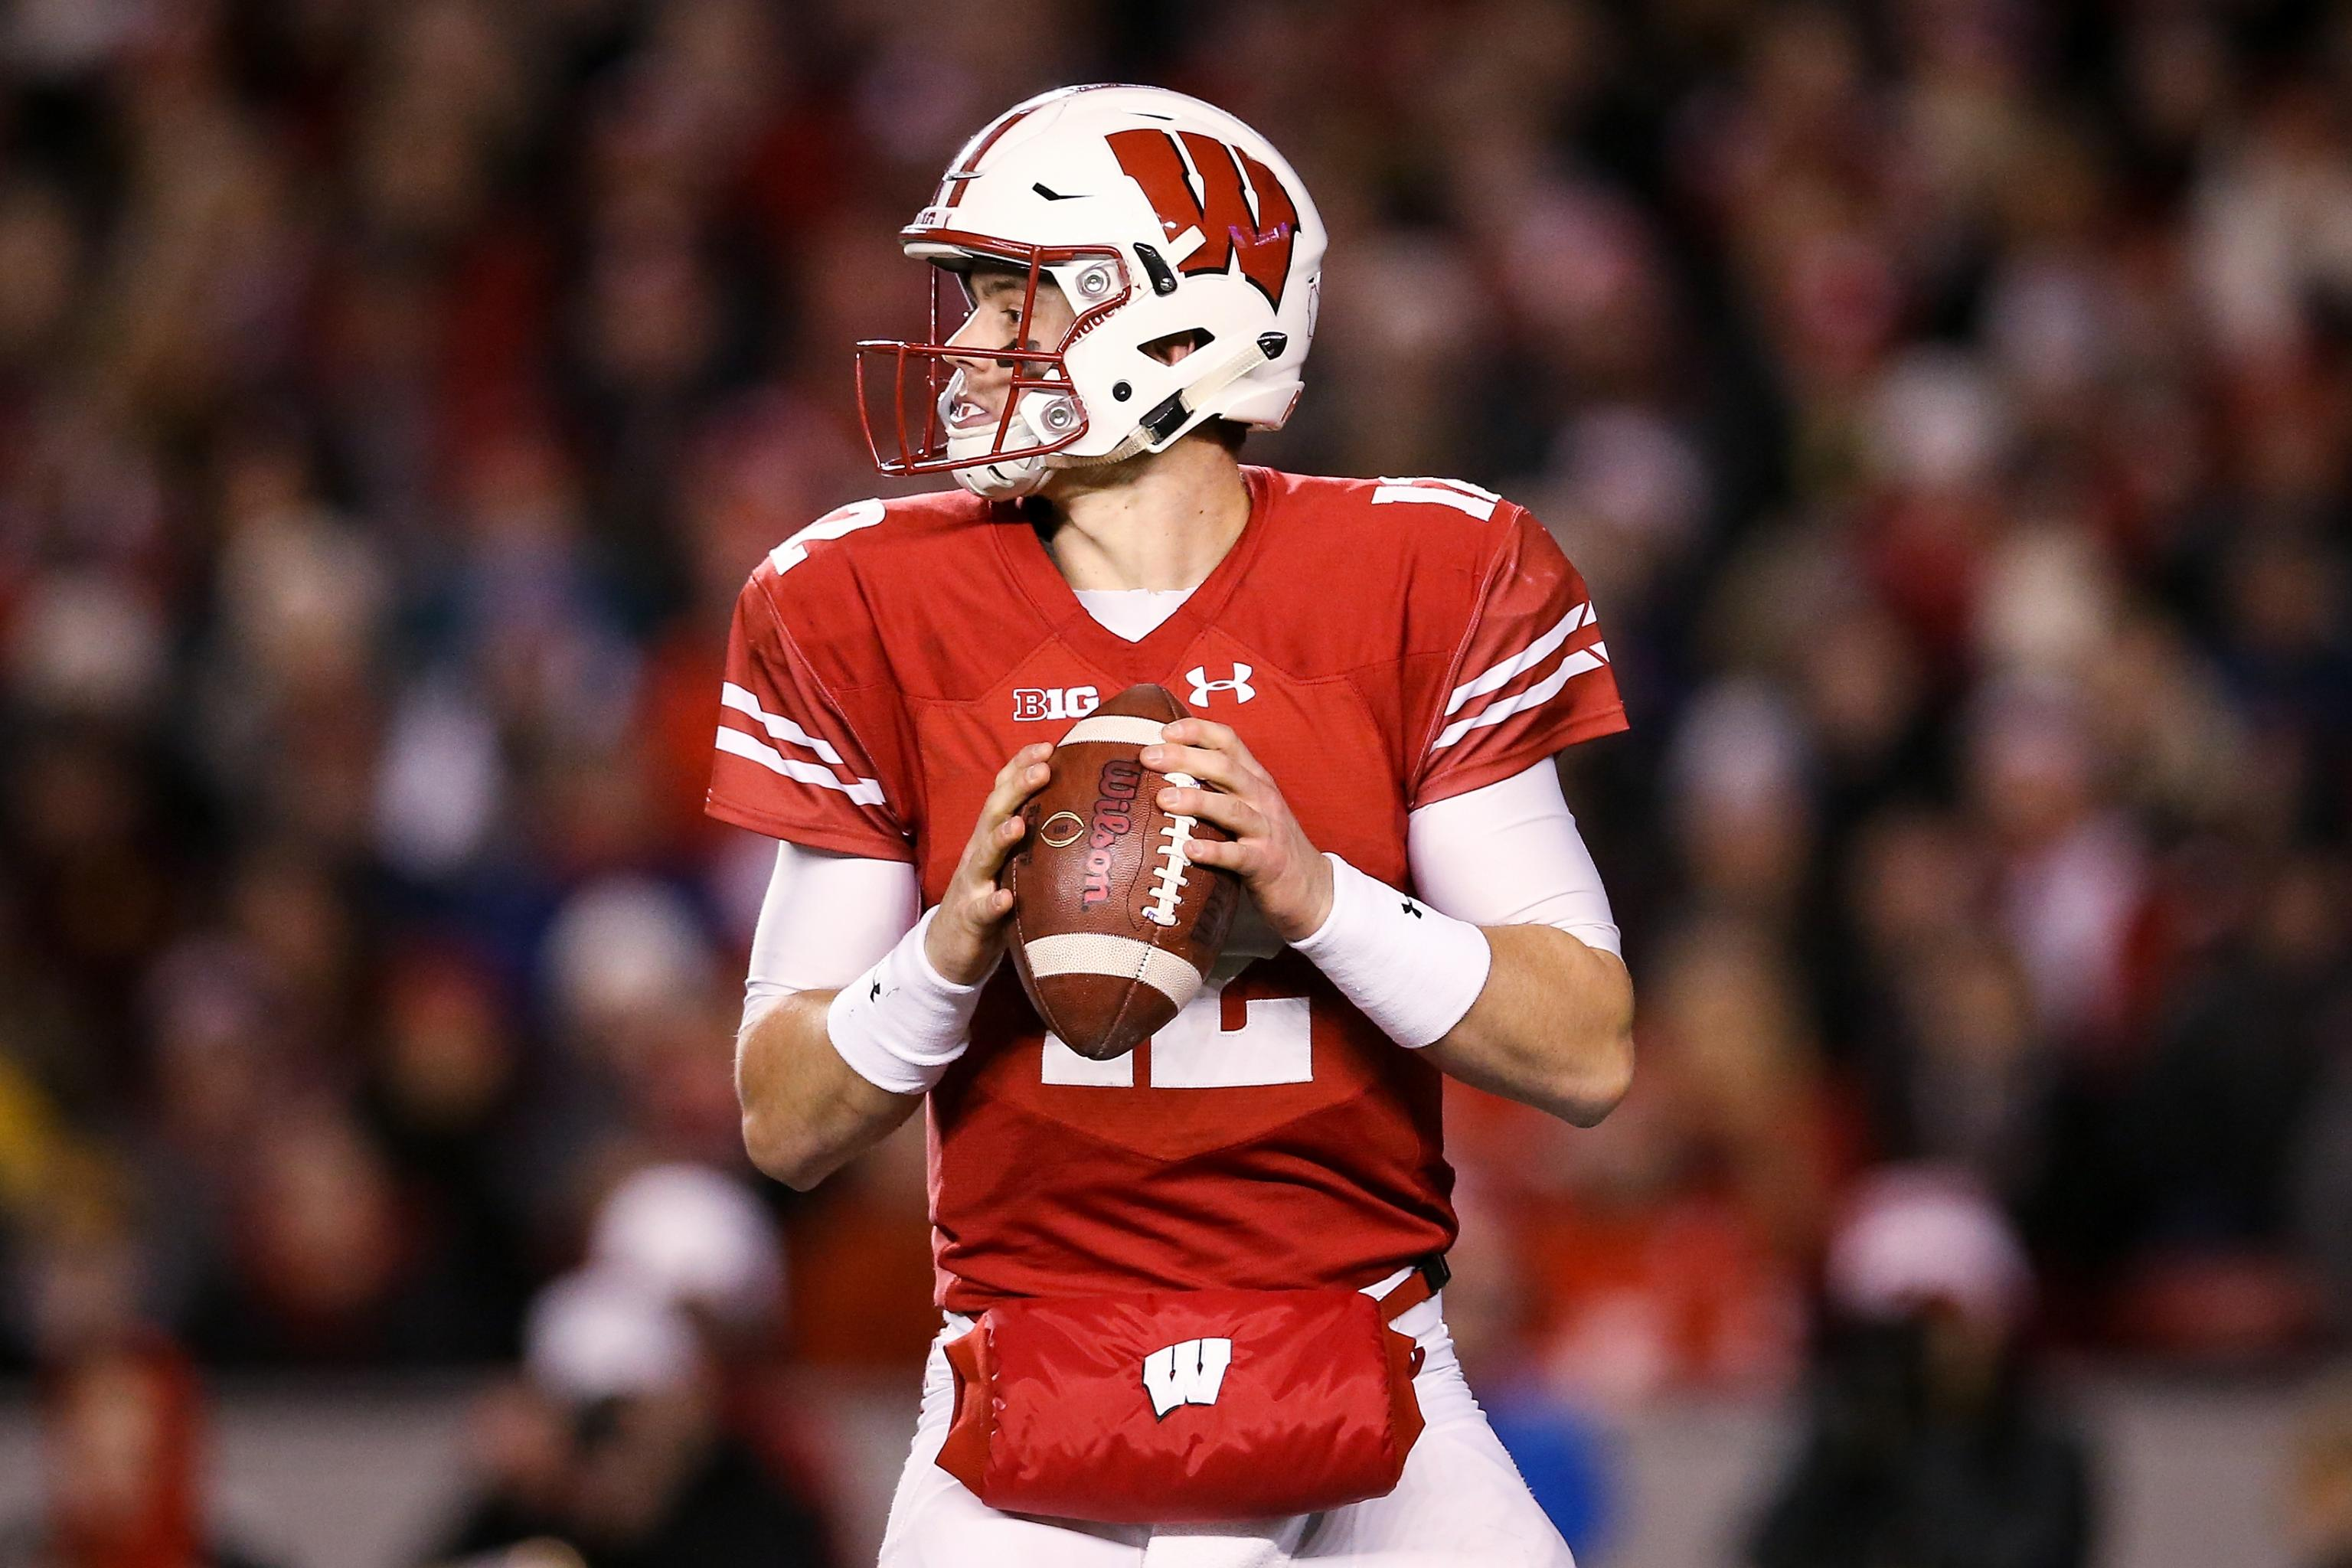 timeless design c8e0c 23a73 Wisconsin QB Alex Hornibrook Out for Pinstripe Bowl with ...